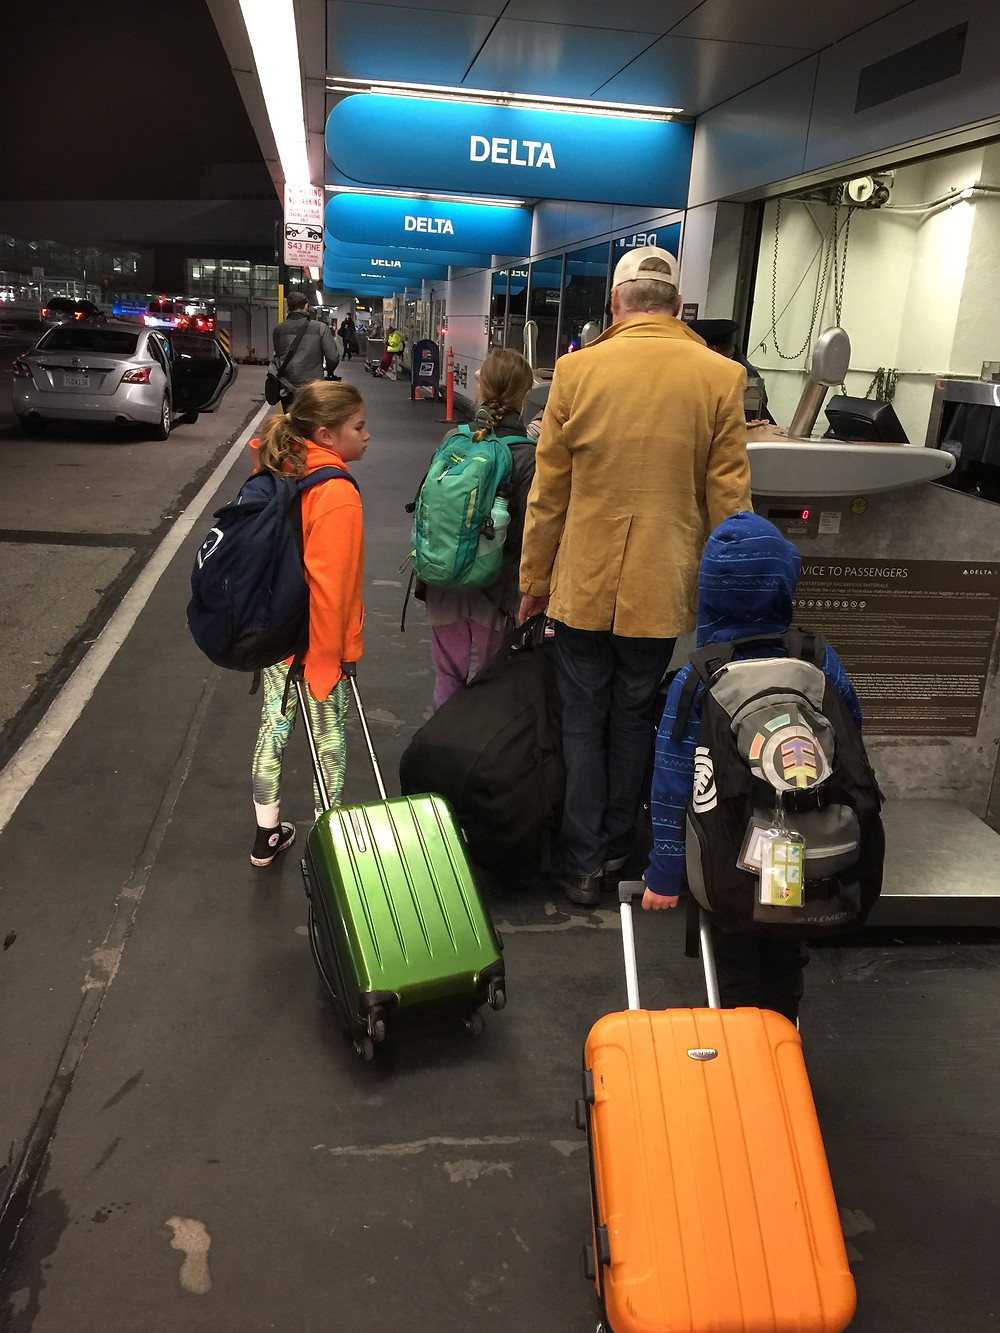 Traveling with Kids - Zip it up and go; avoid checked bag fees by doing curbside check-in and bringing carry-on suitcases to the gate!